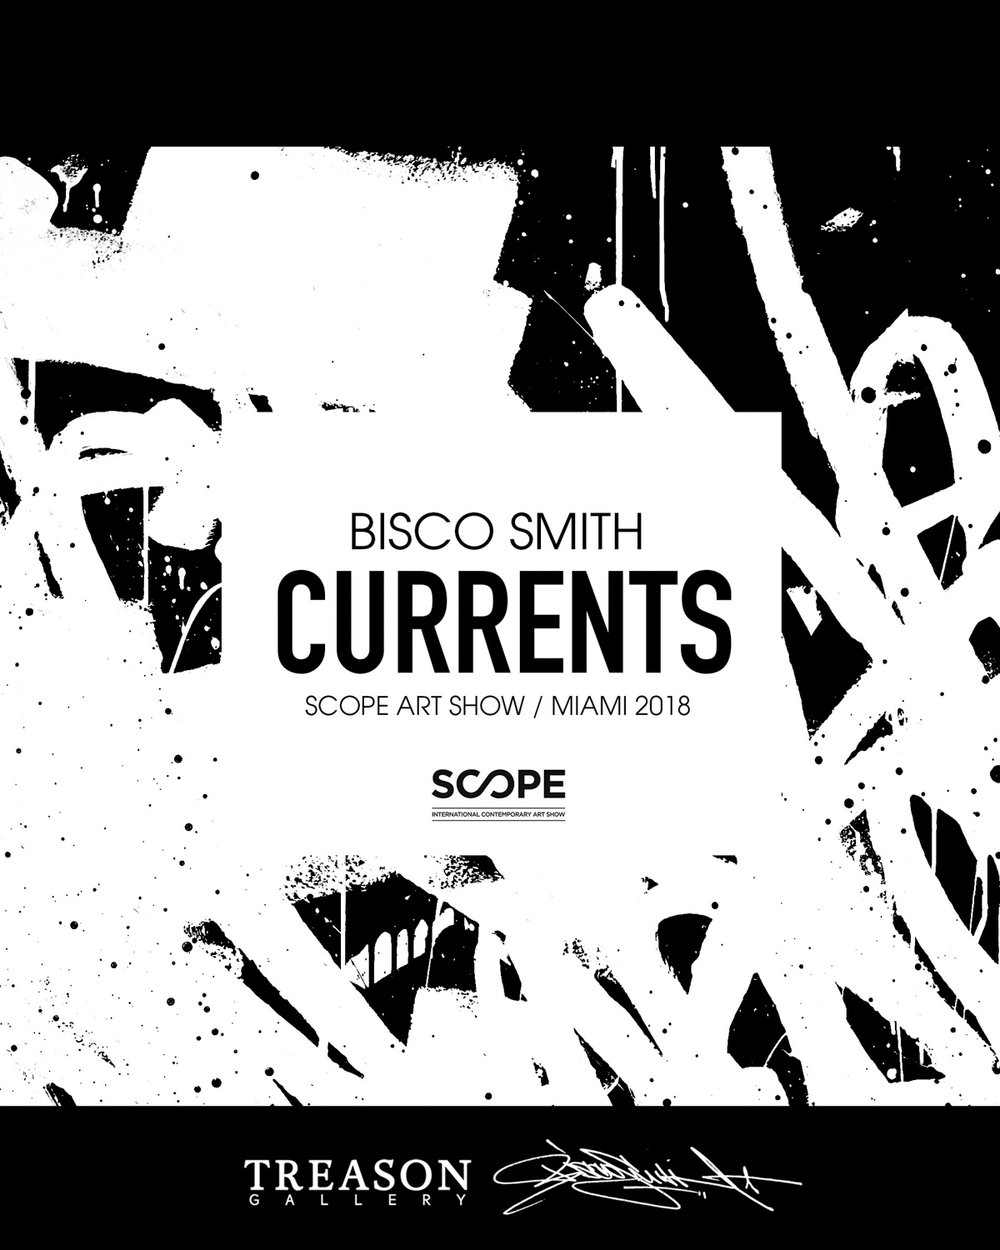 Currents - Bisco Smith - Scope- PROMOBLACK